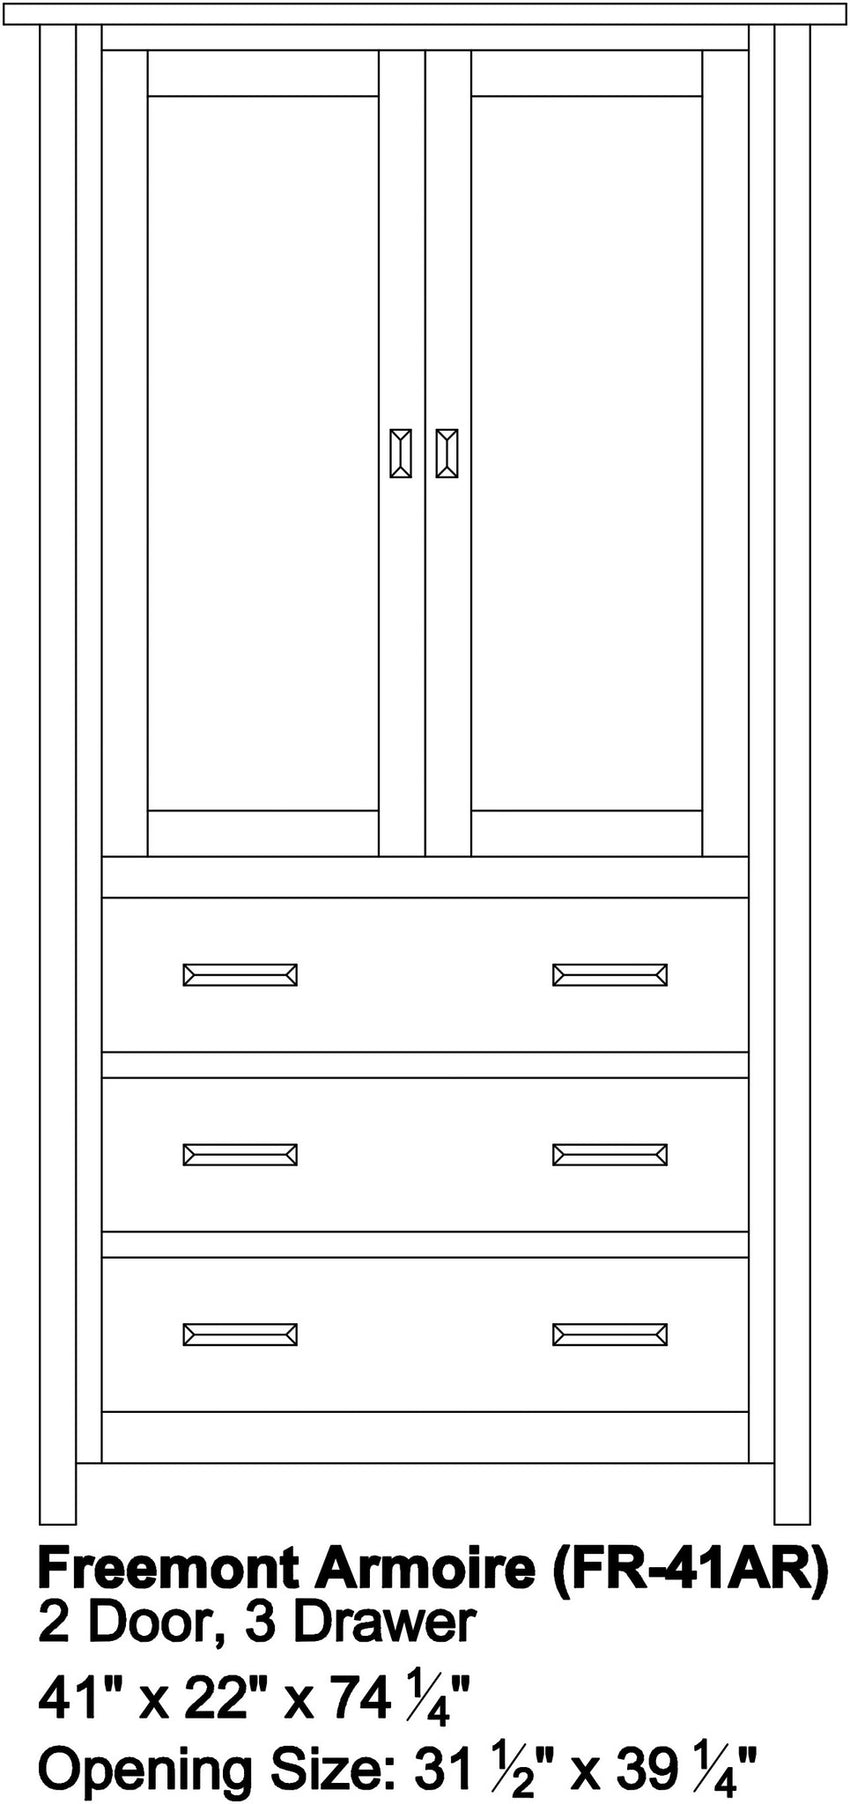 Freemont Mission Armoire, 2 Door, 3 Drawer